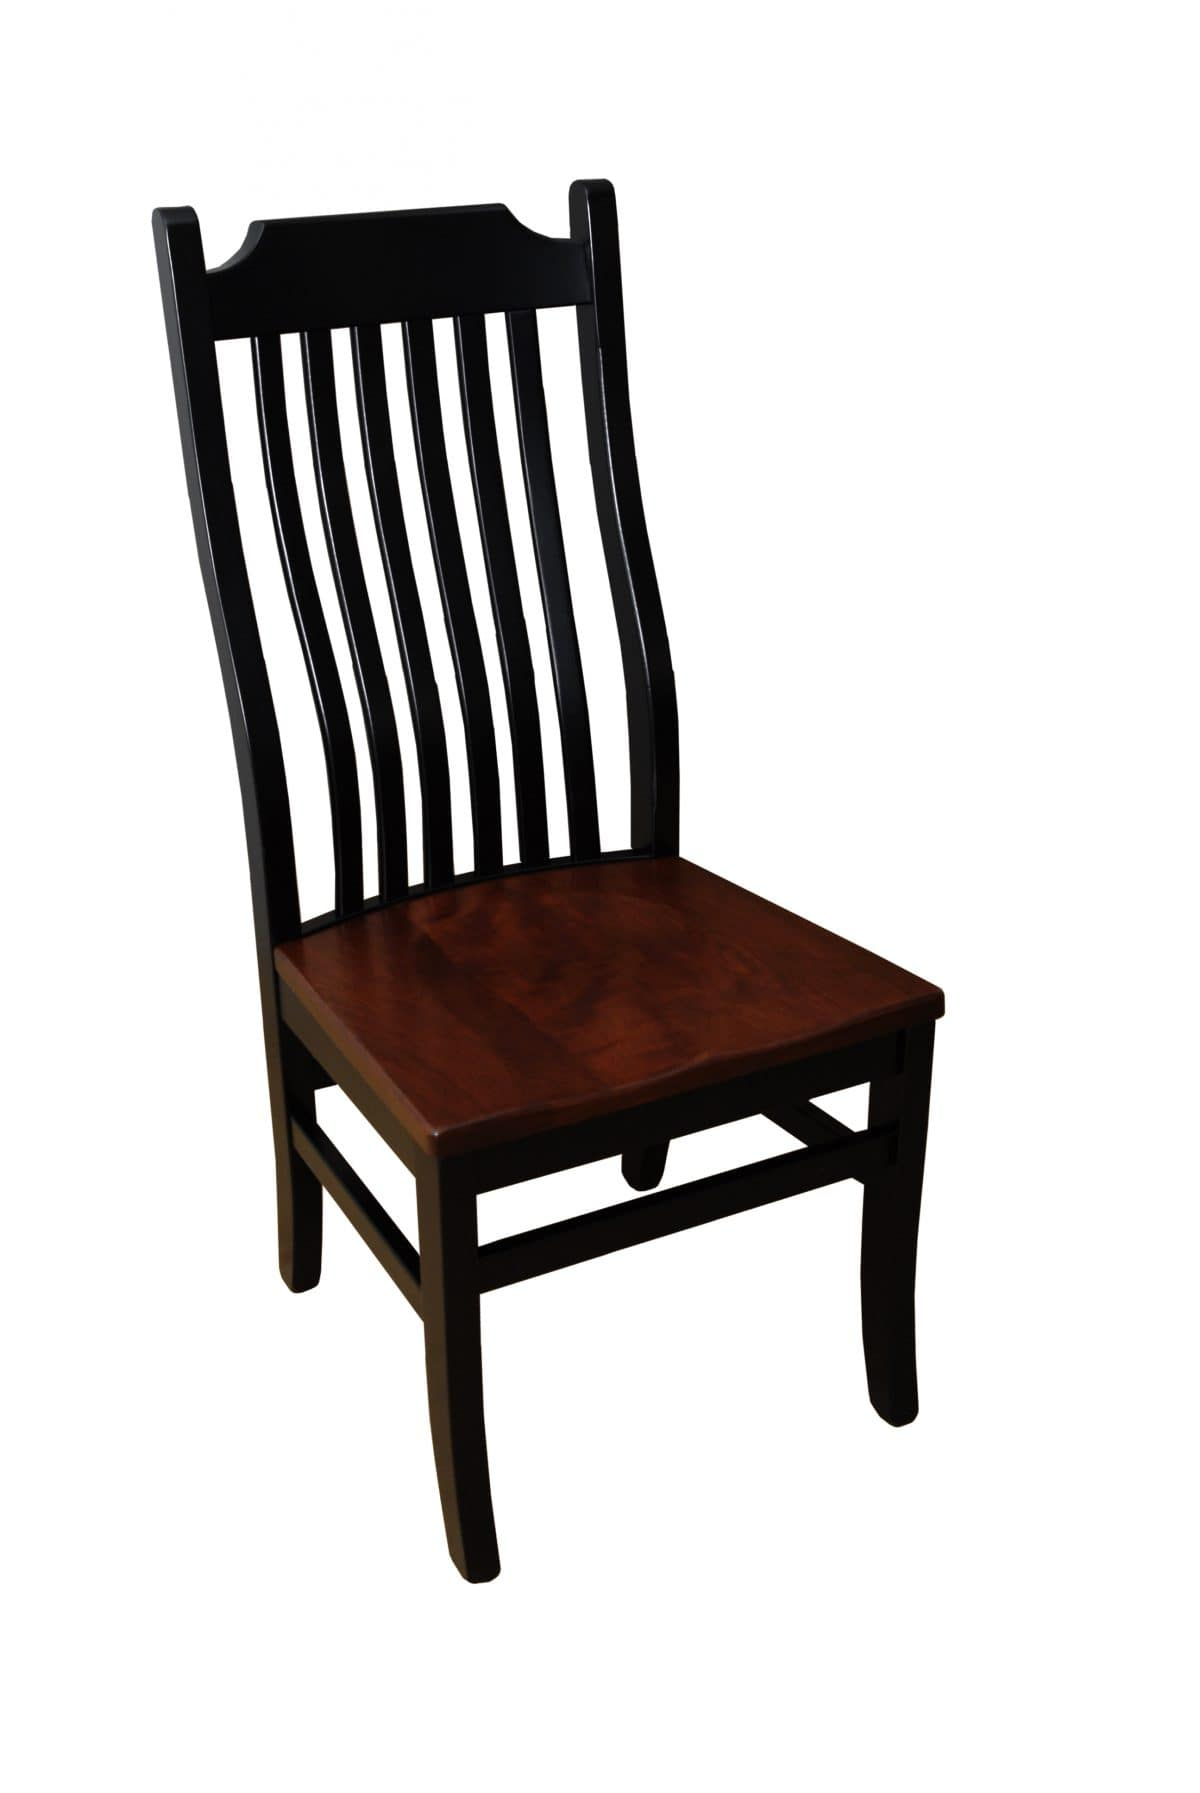 Photo of: BWS 76 Mission Side Chair